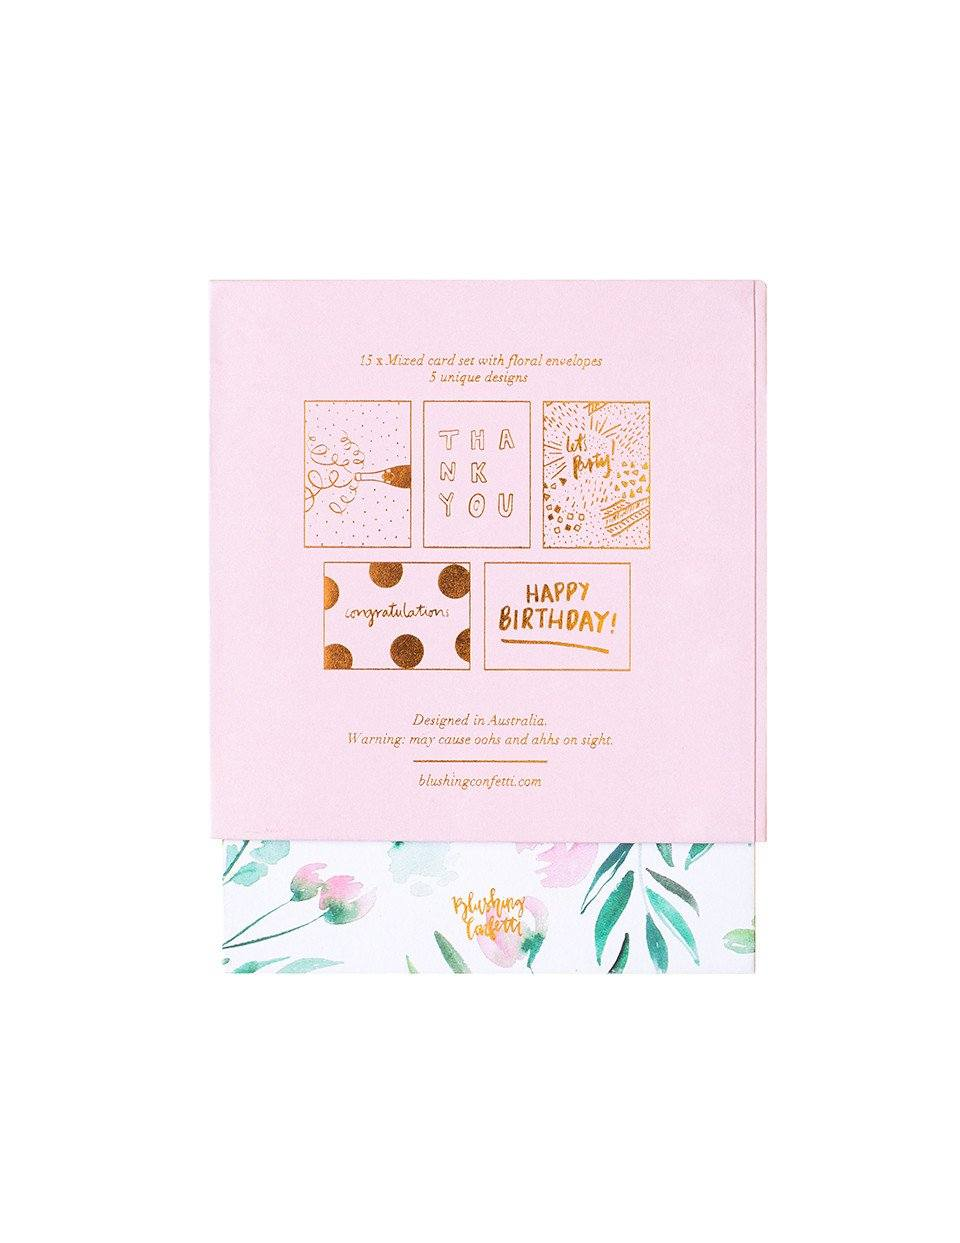 Mixed Greeting Card Set | Blushing Confetti